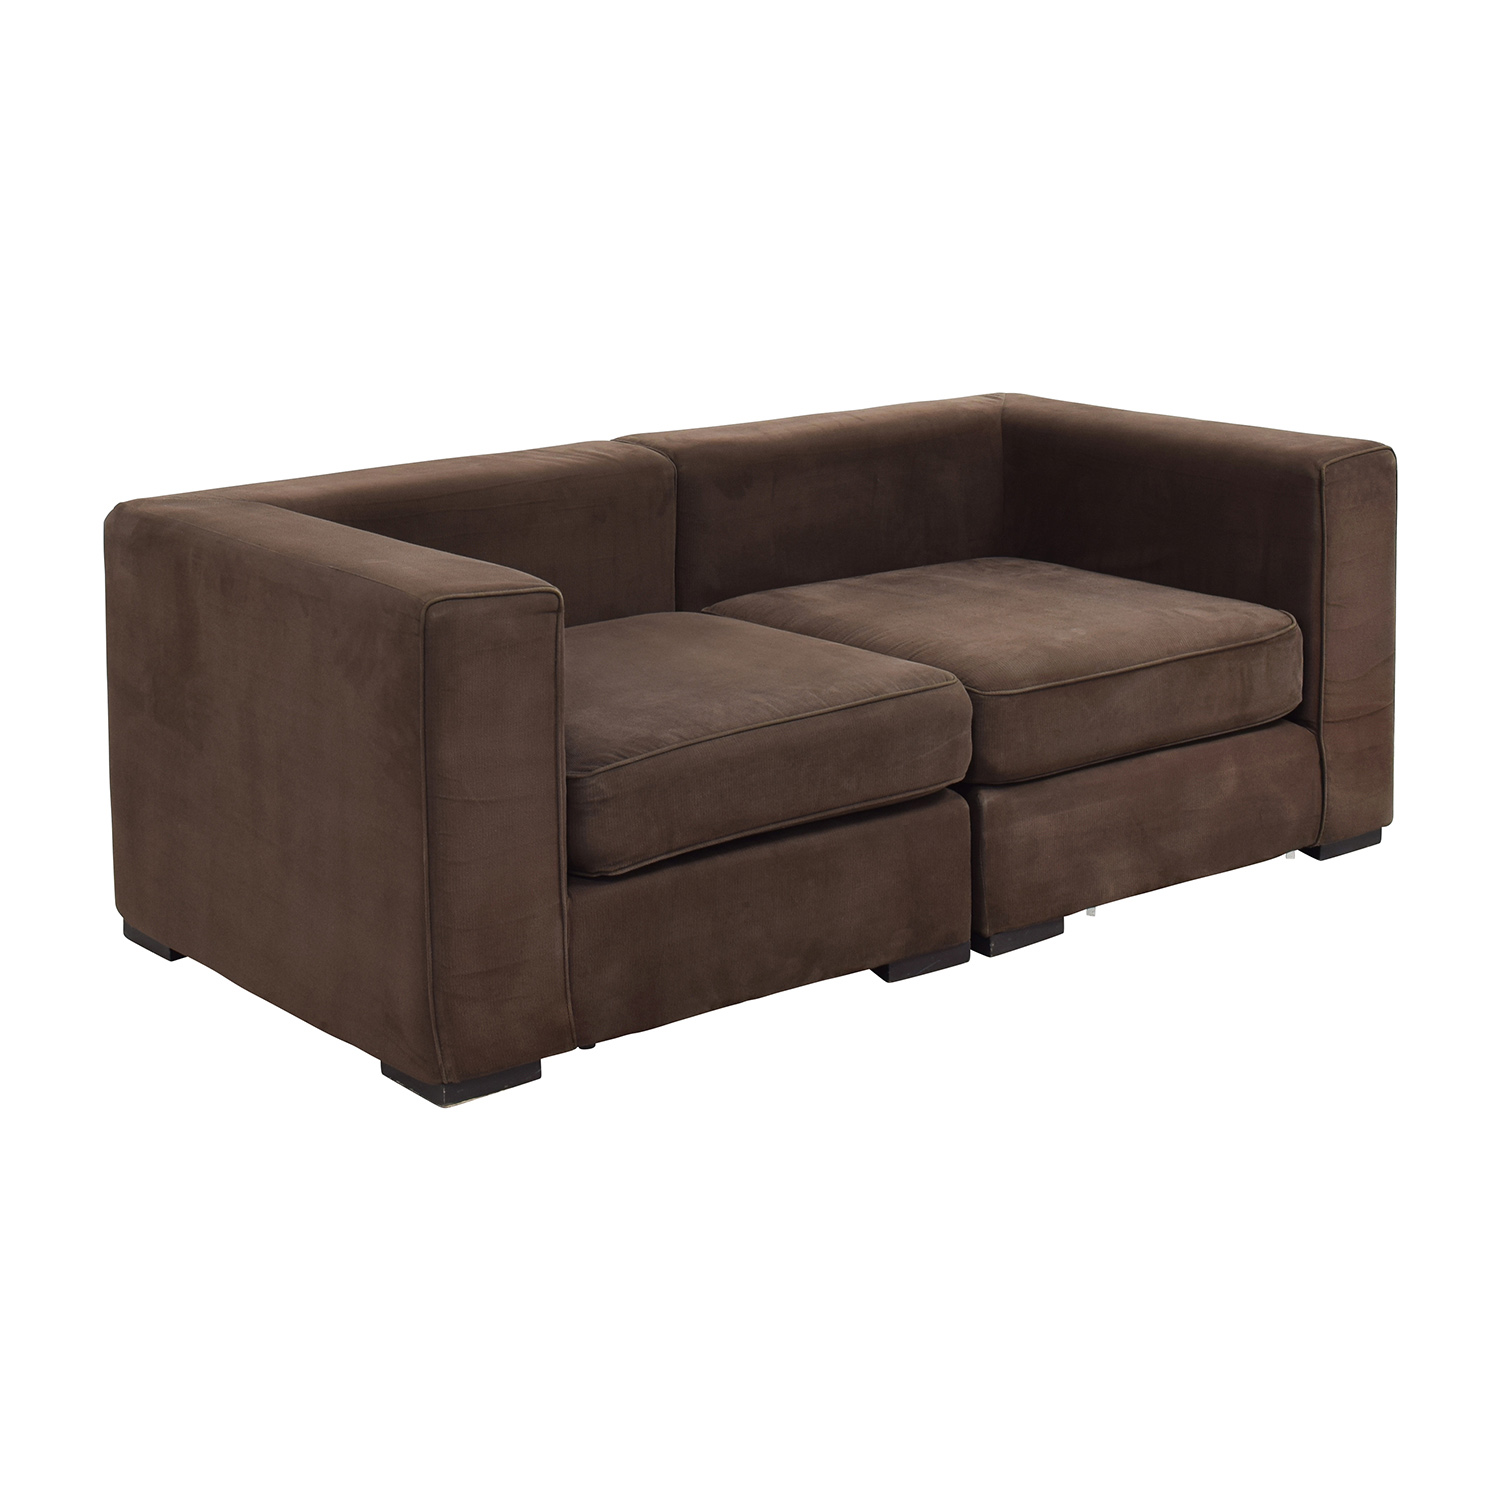 59 Off West Elm West Elm Brown Modular Sofa Sofas